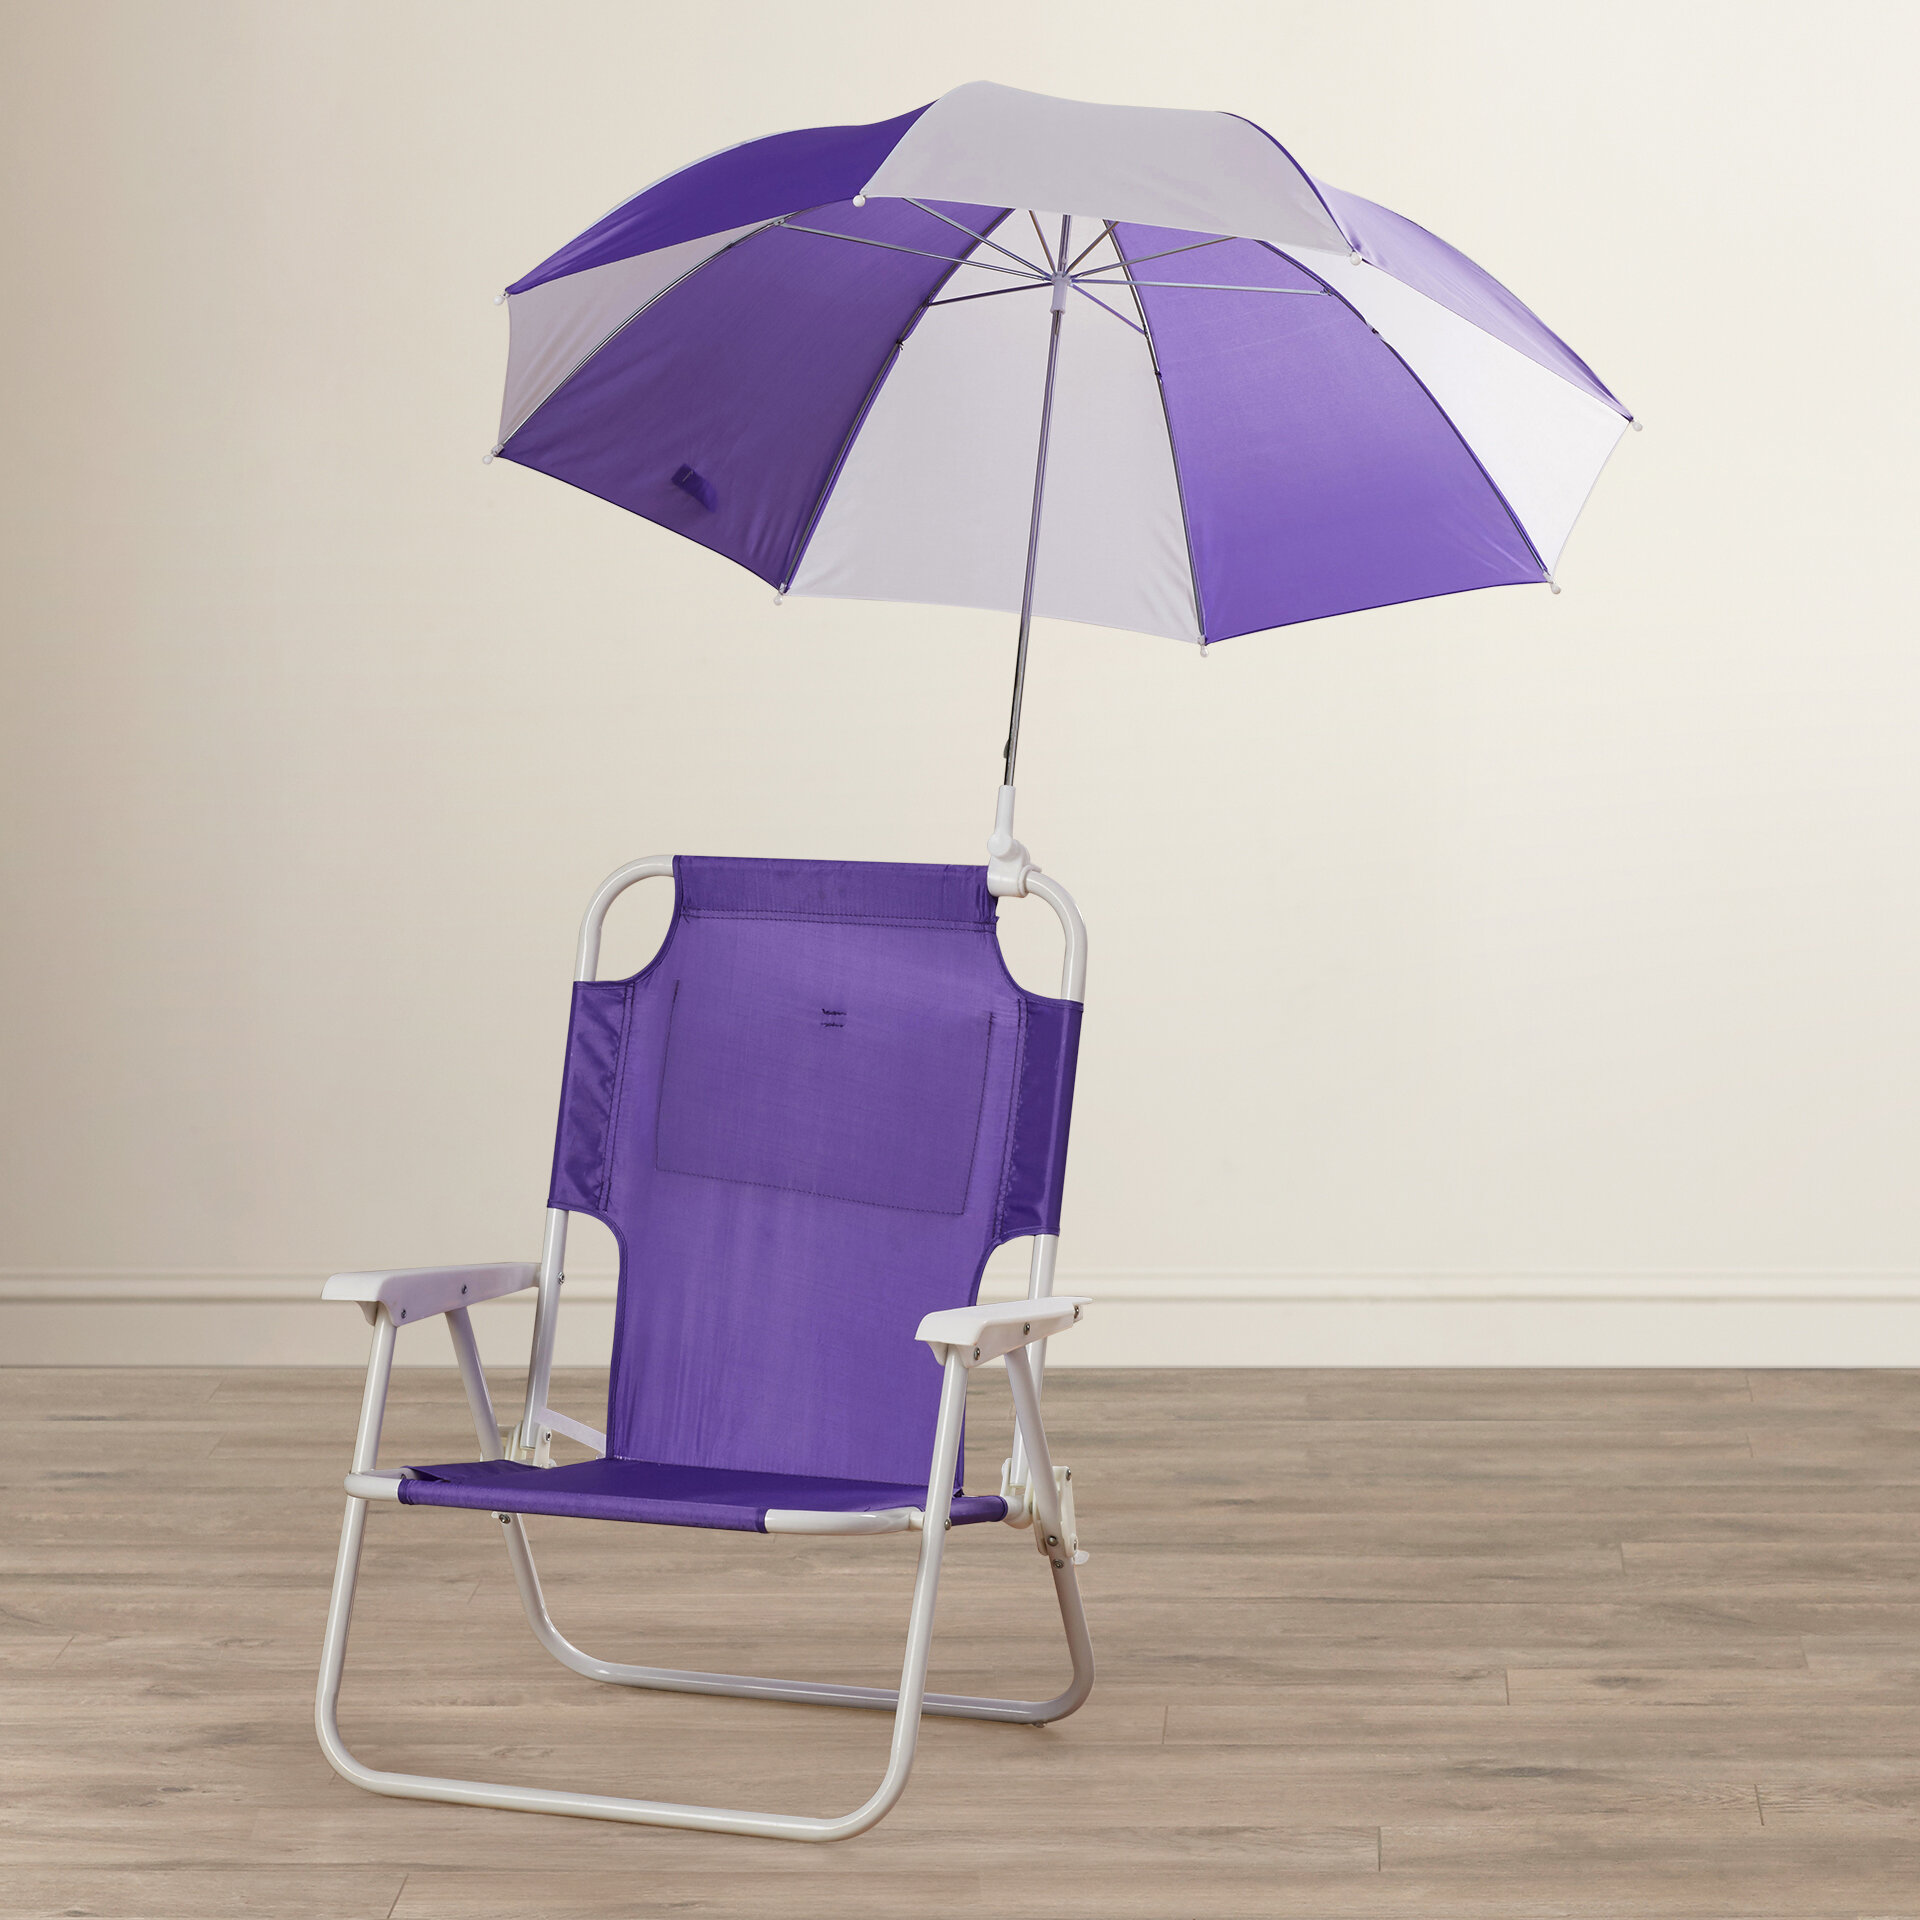 garden outdoor table furniture free pull kiss parasol material chair umbrella